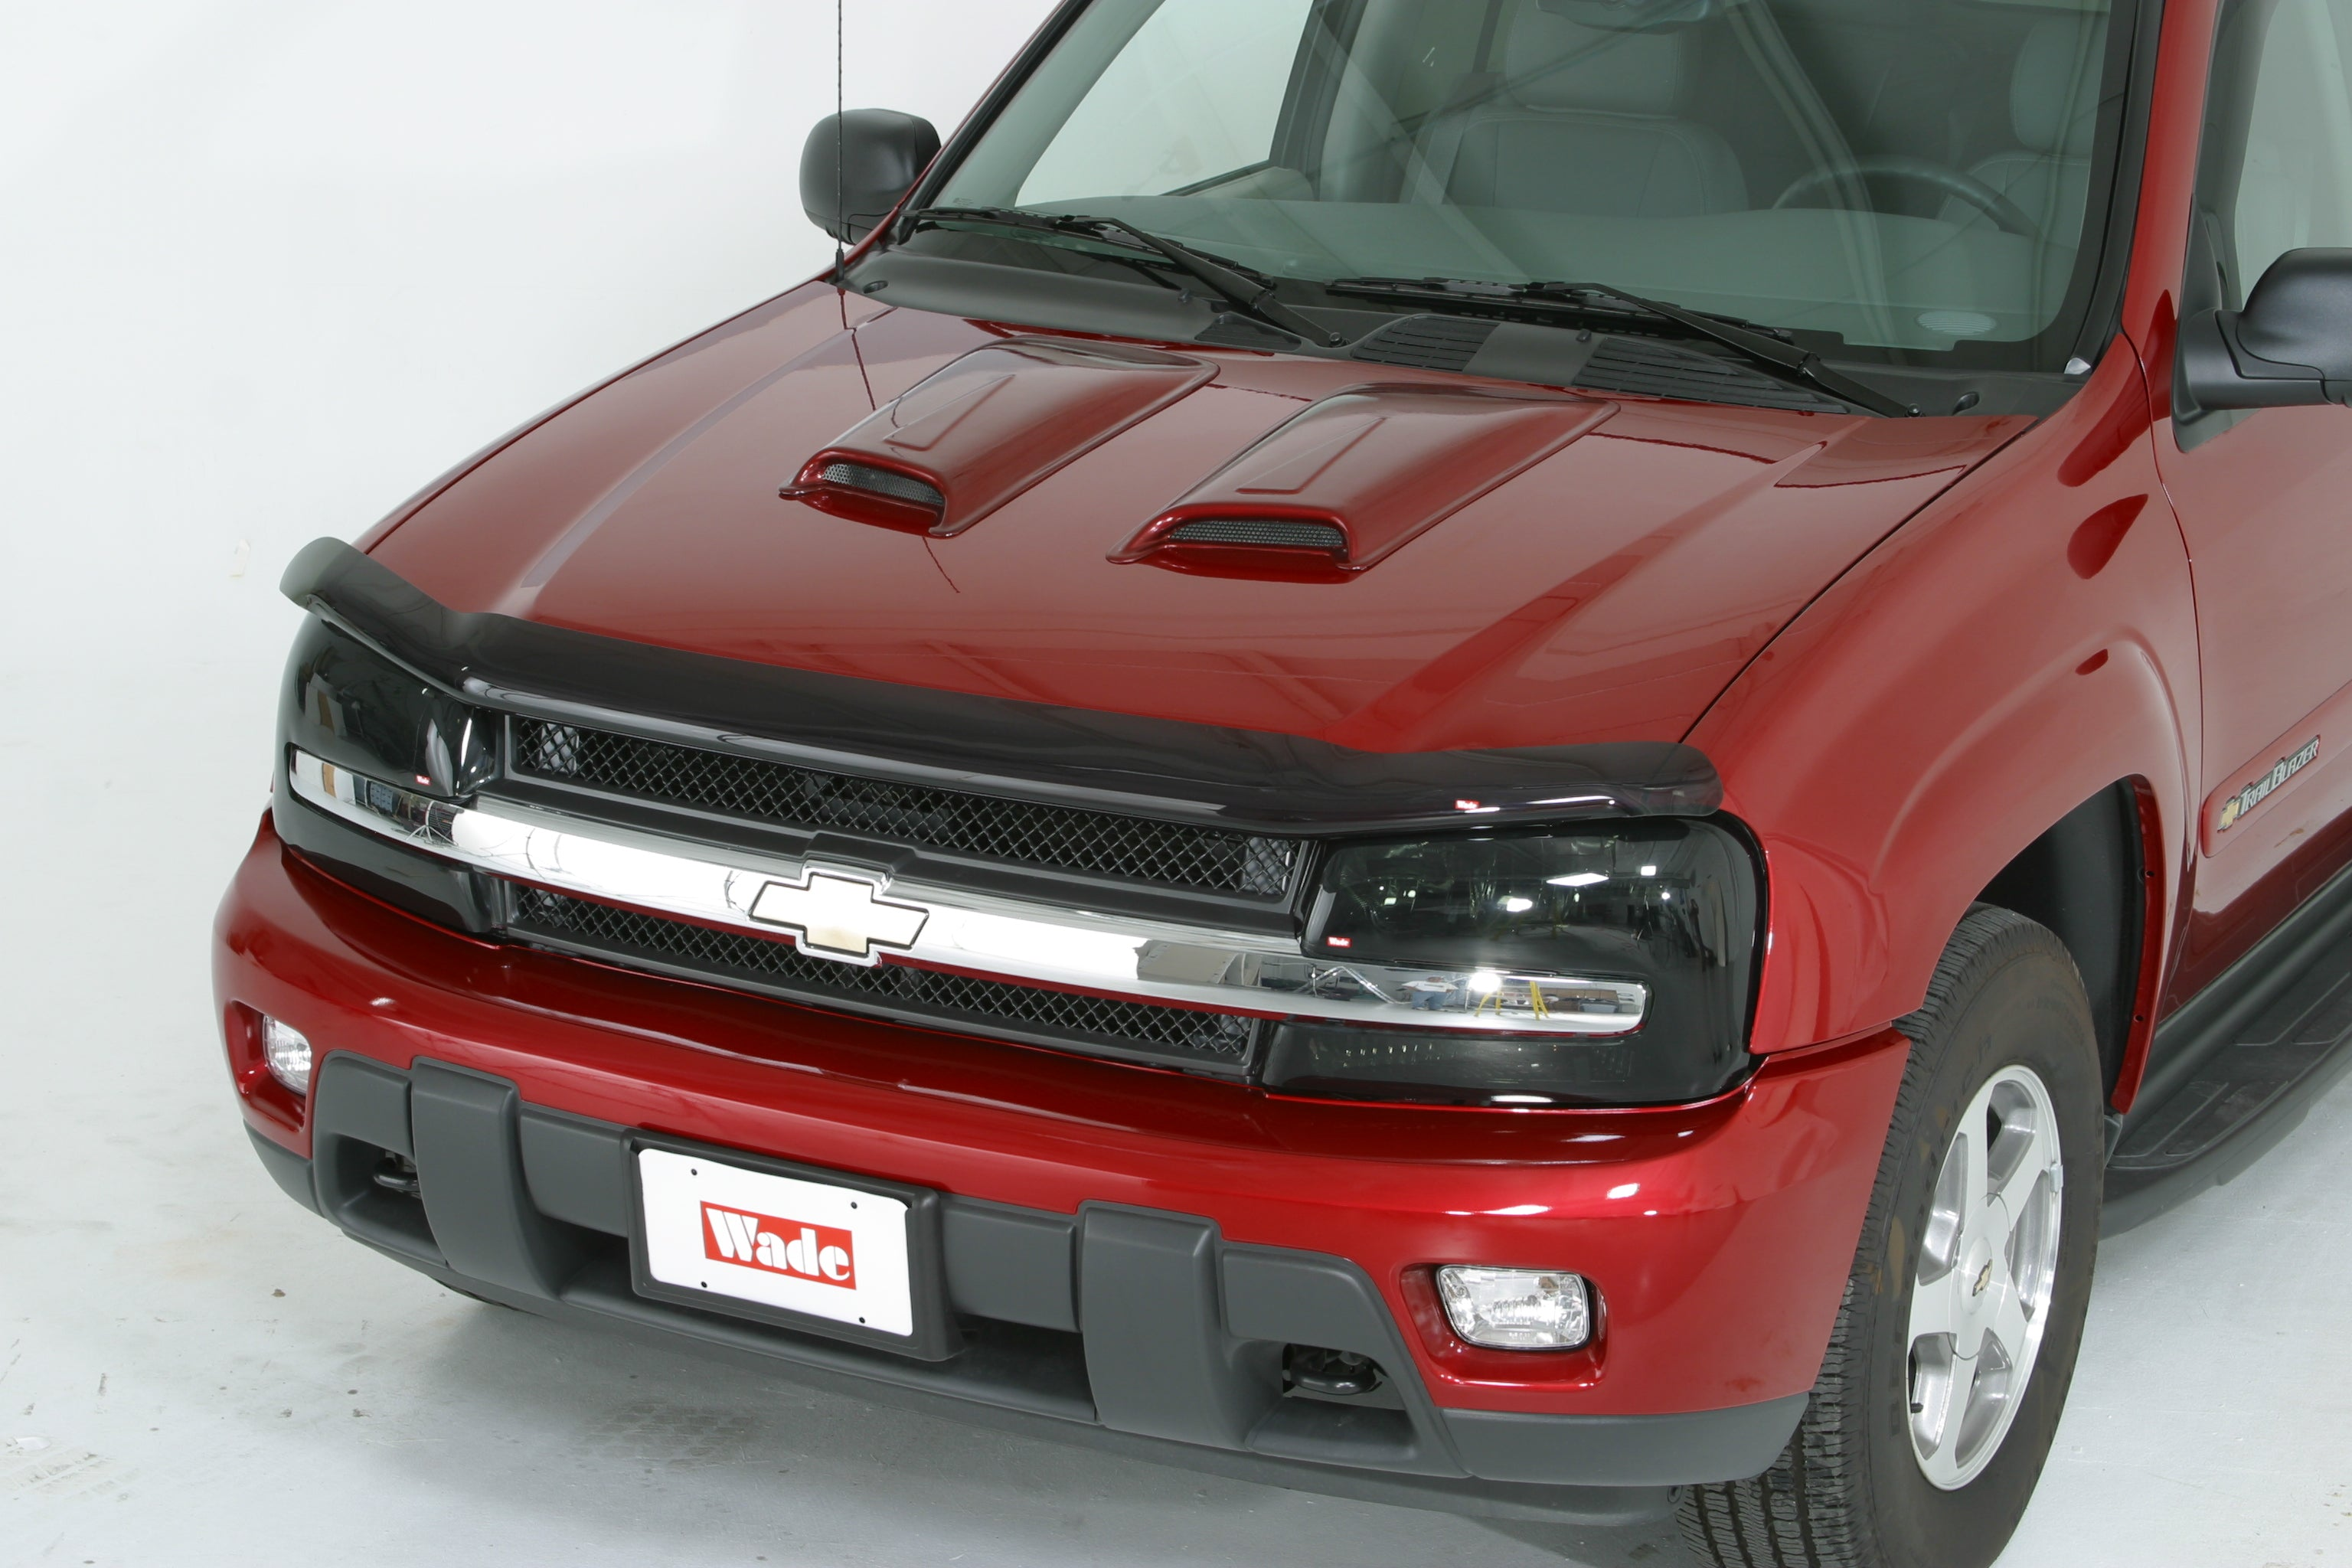 1990 Nissan Pickup 4WD (flush mount) Head Light Covers